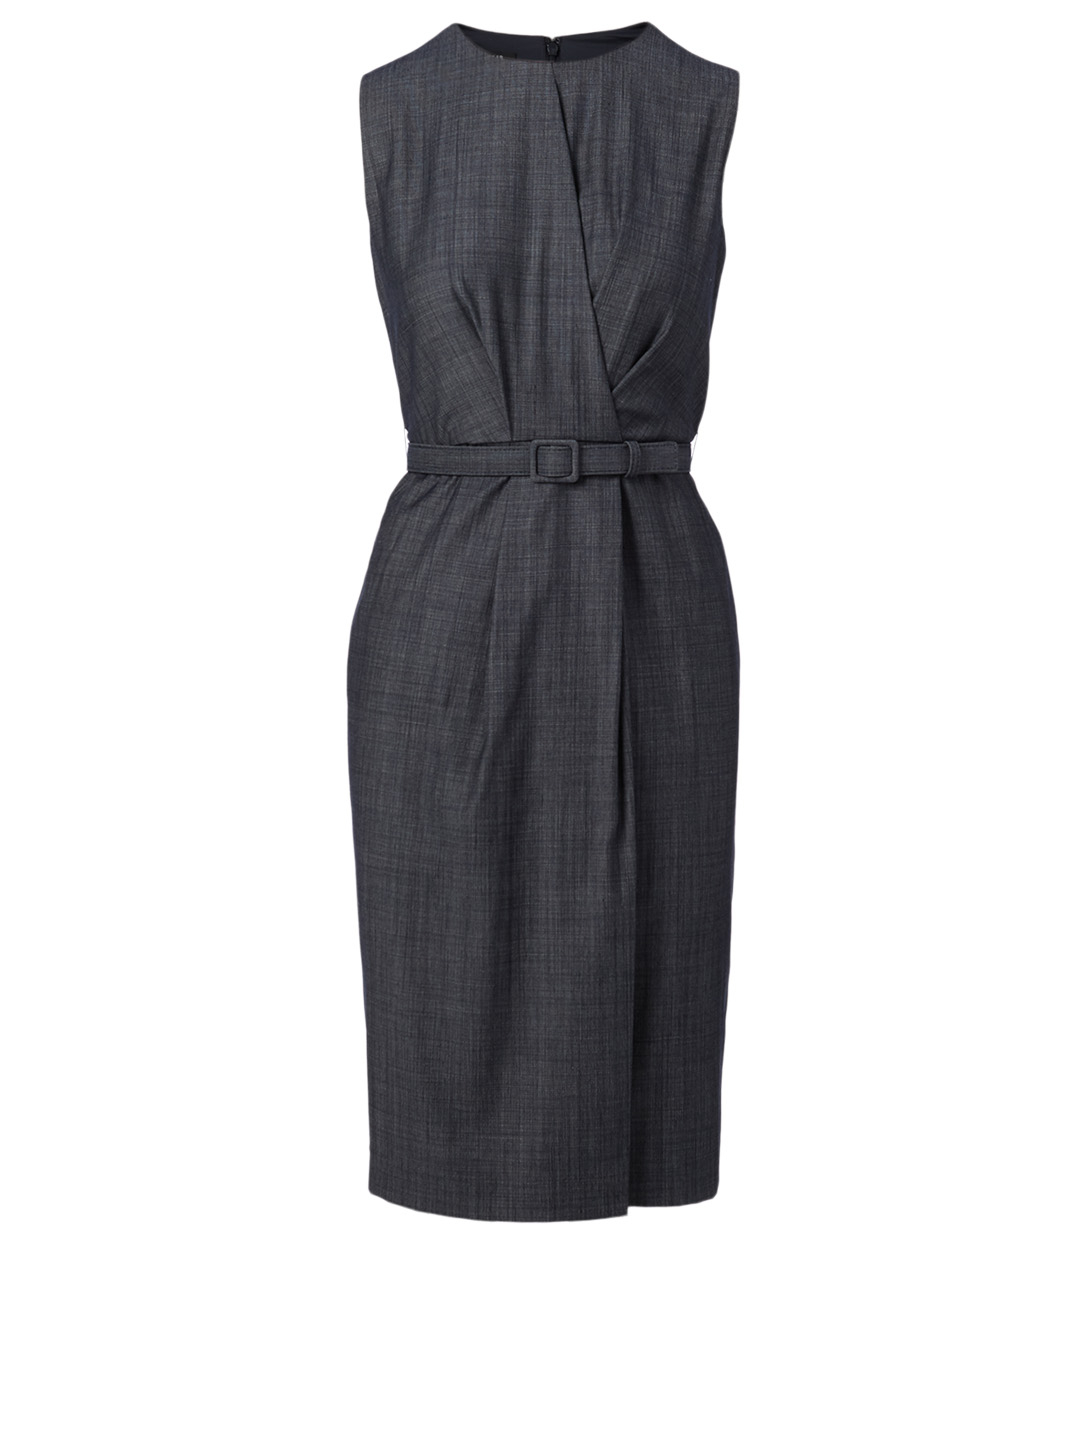 LAFAYETTE 148 NEW YORK Jude Wool-Blend Dress With Belt Women's Blue